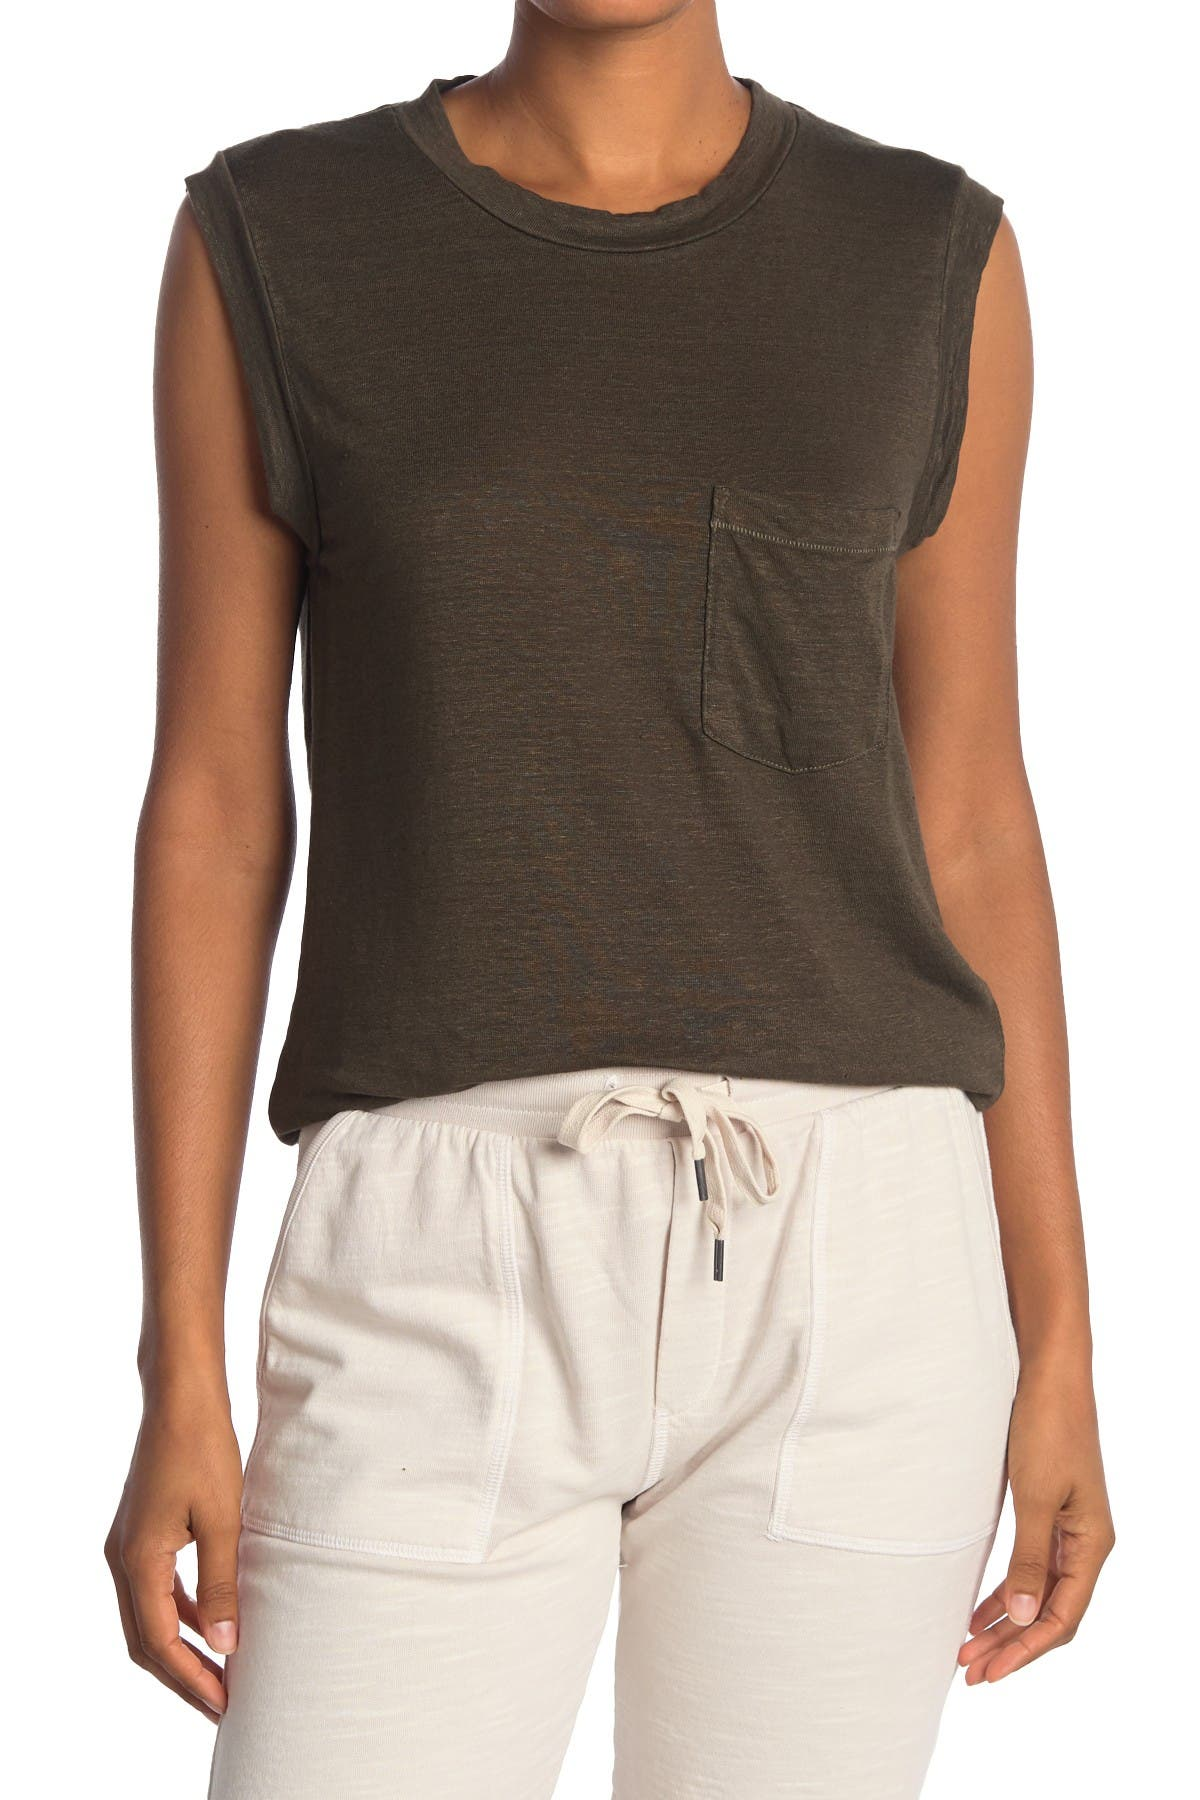 Image of NSF CLOTHING Claire Linen Blend Muscle Tank